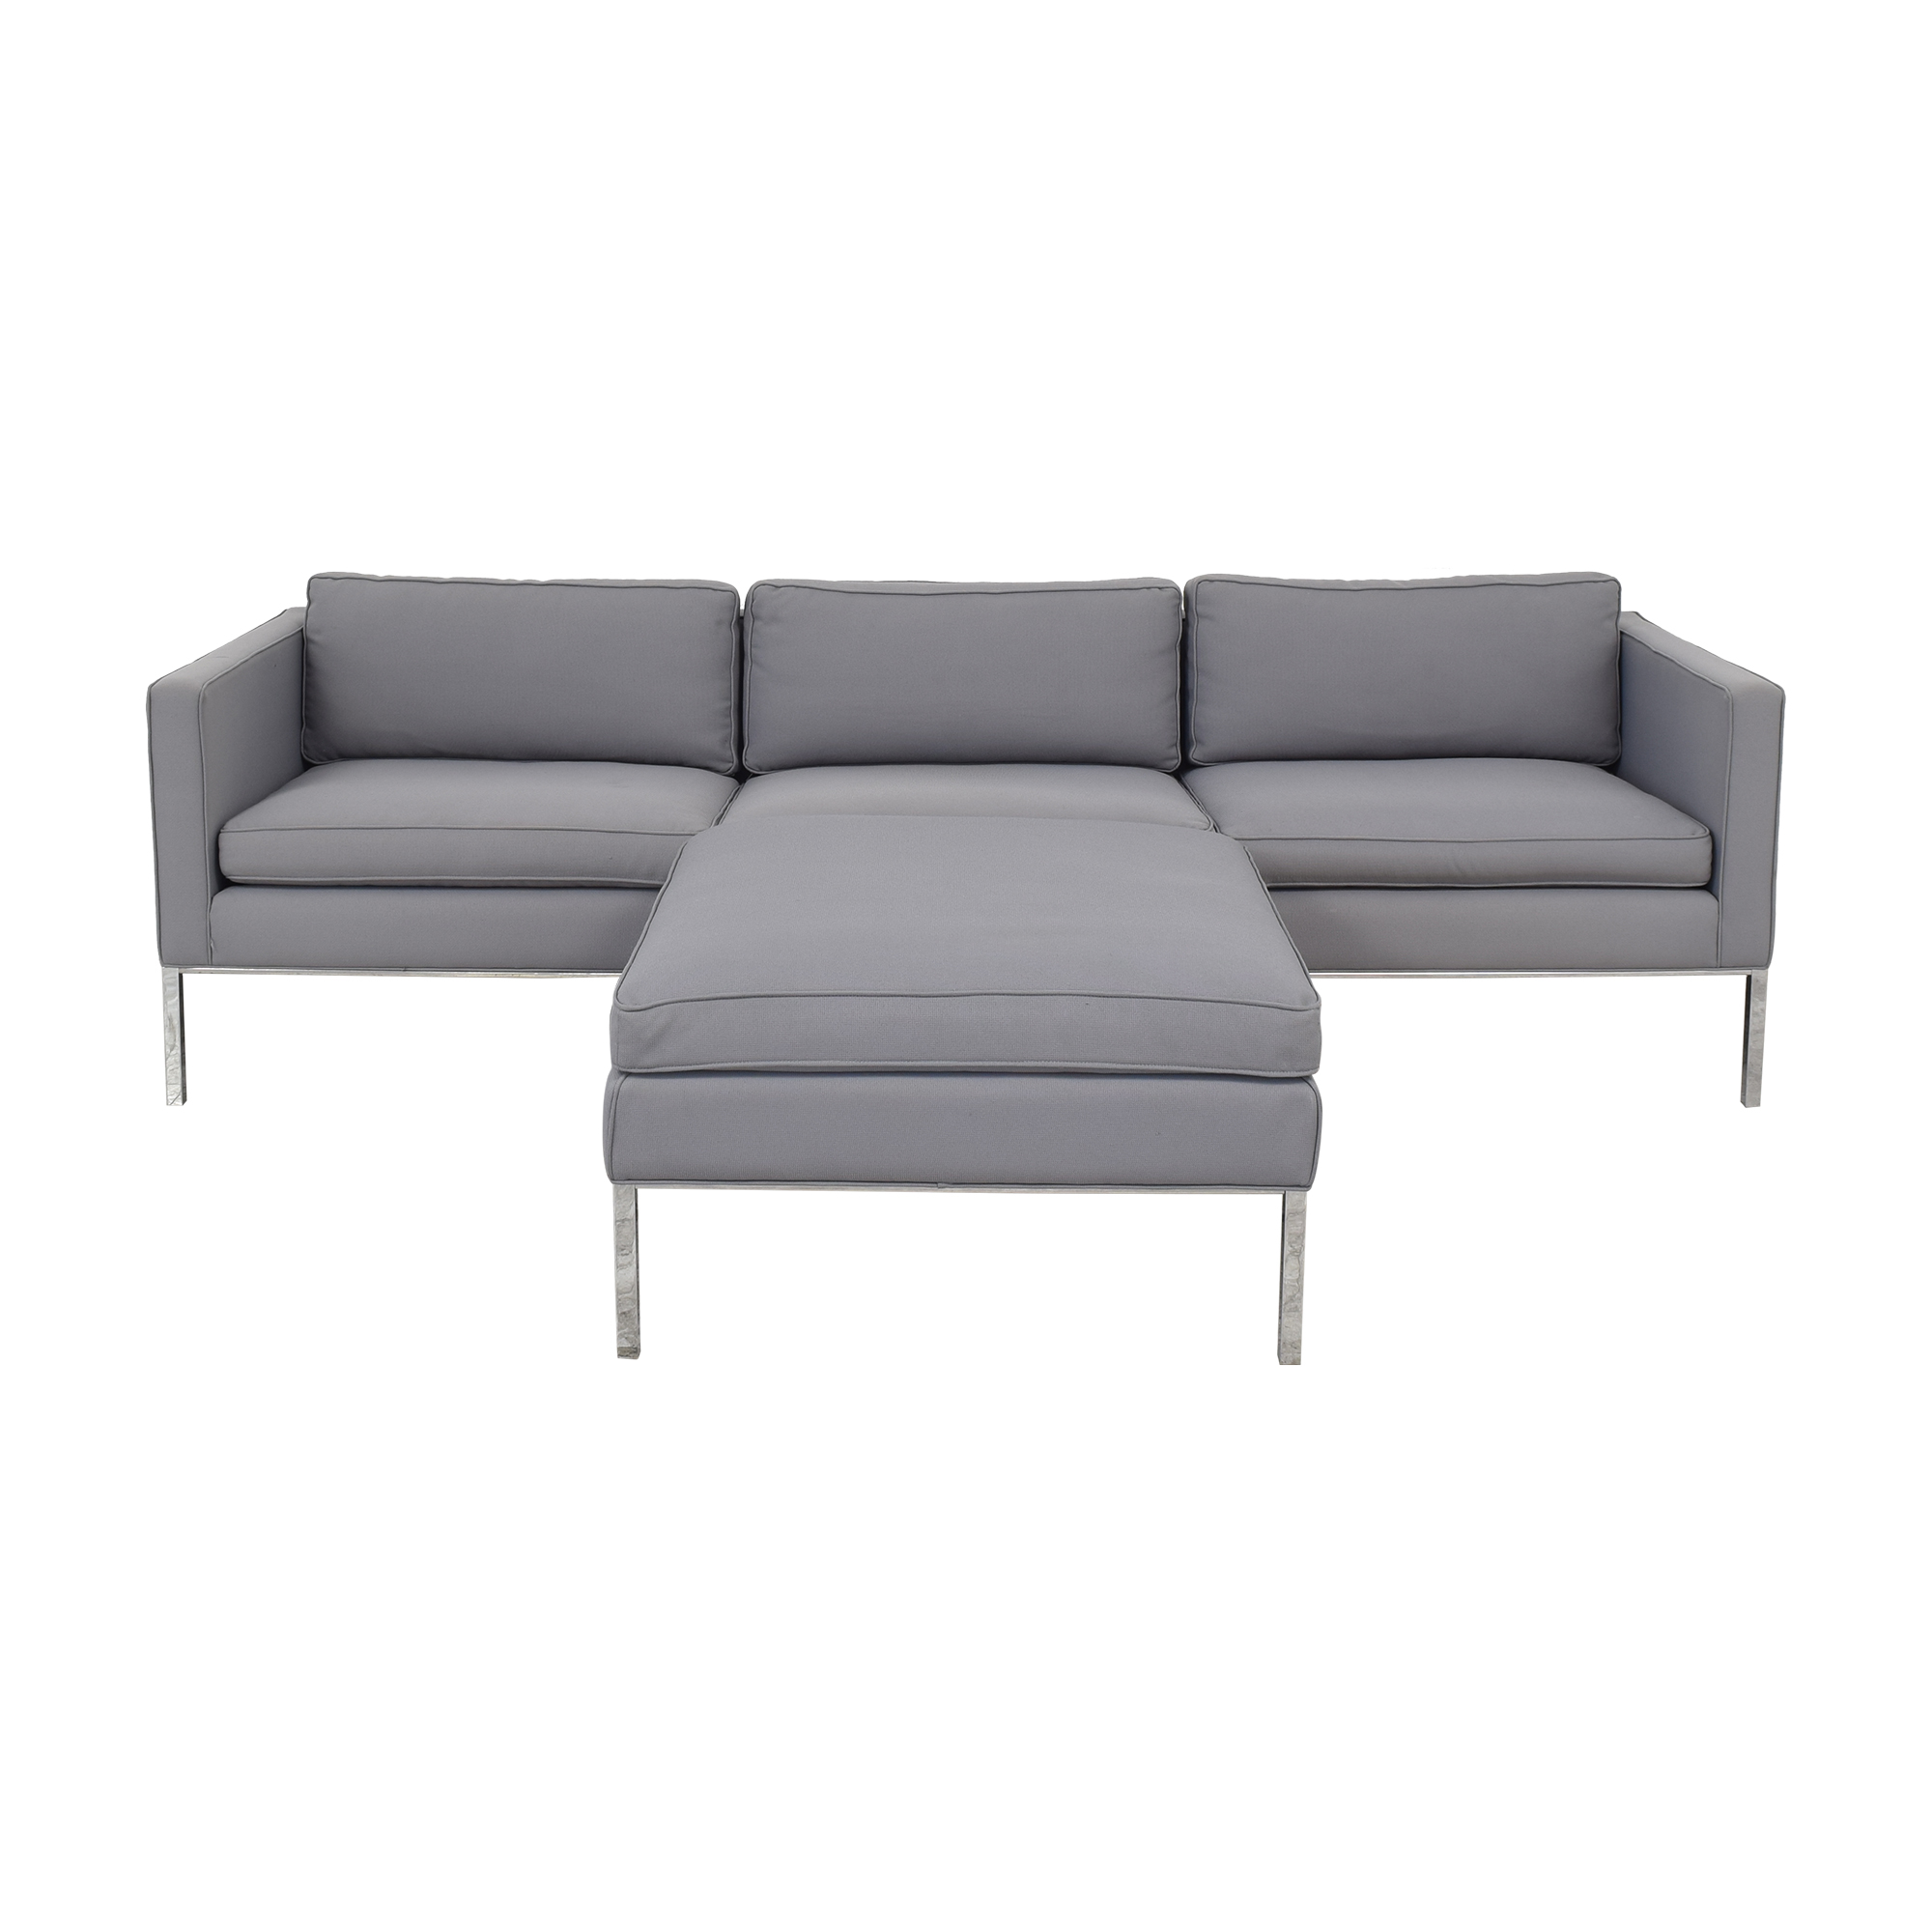 Artifort Artifort 905 3 Seater Sofa with 905 Ottoman price